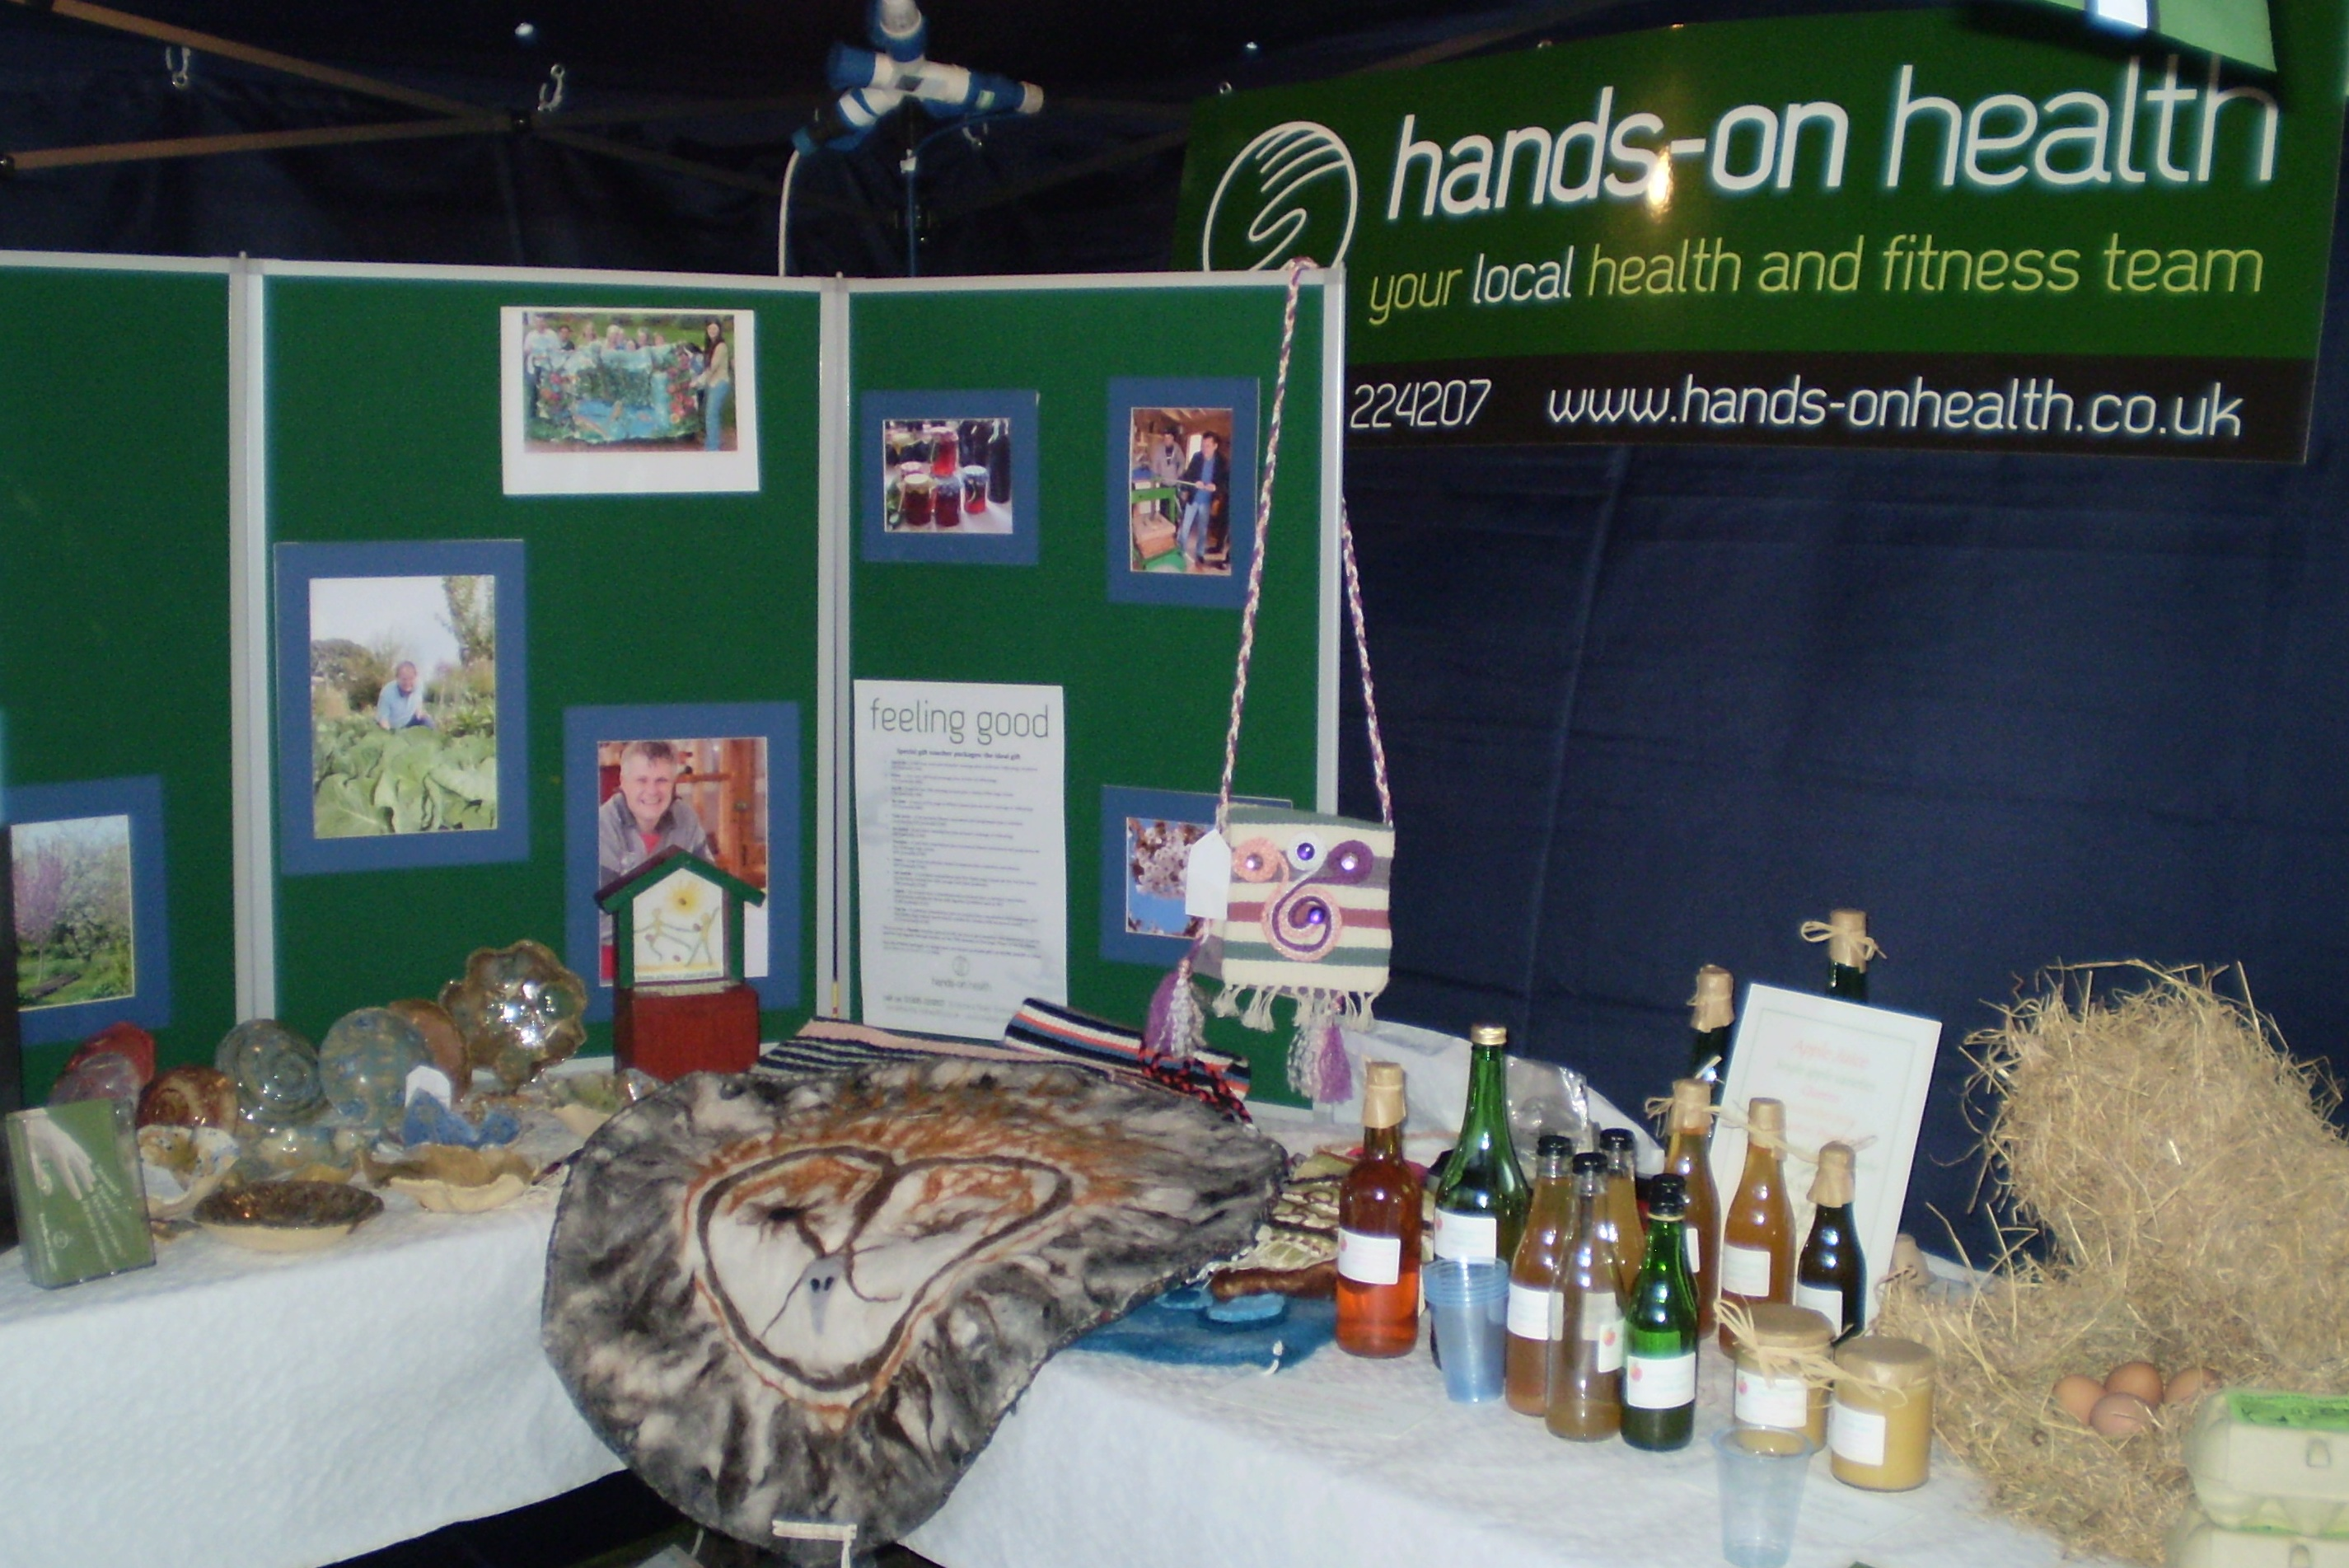 Part of the shared stand, with a feltwork yoga mat featuring an owl in the foreground. Yoga mats can be made to commission.